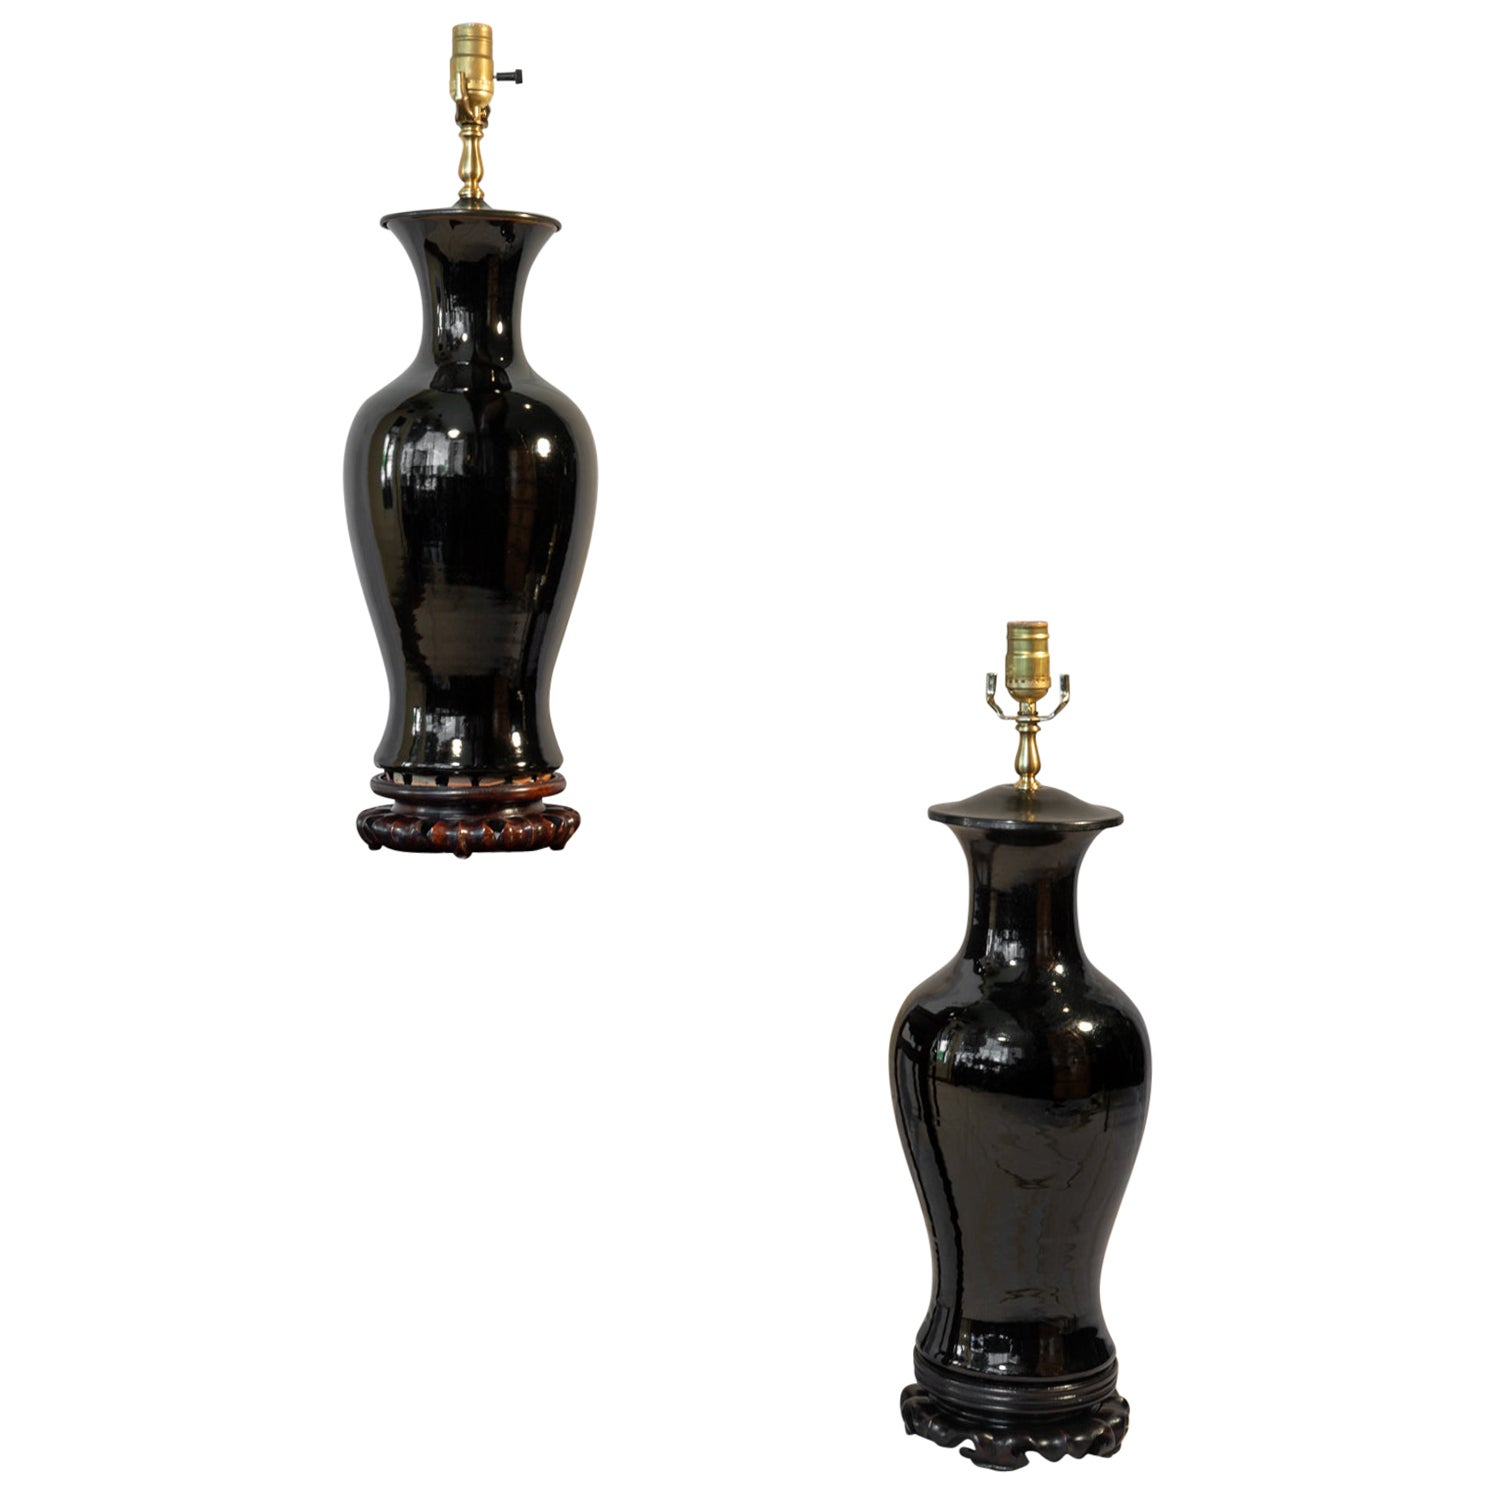 Associated Pair of 19th Century Chinese Porcelain Mirror Black Lamps